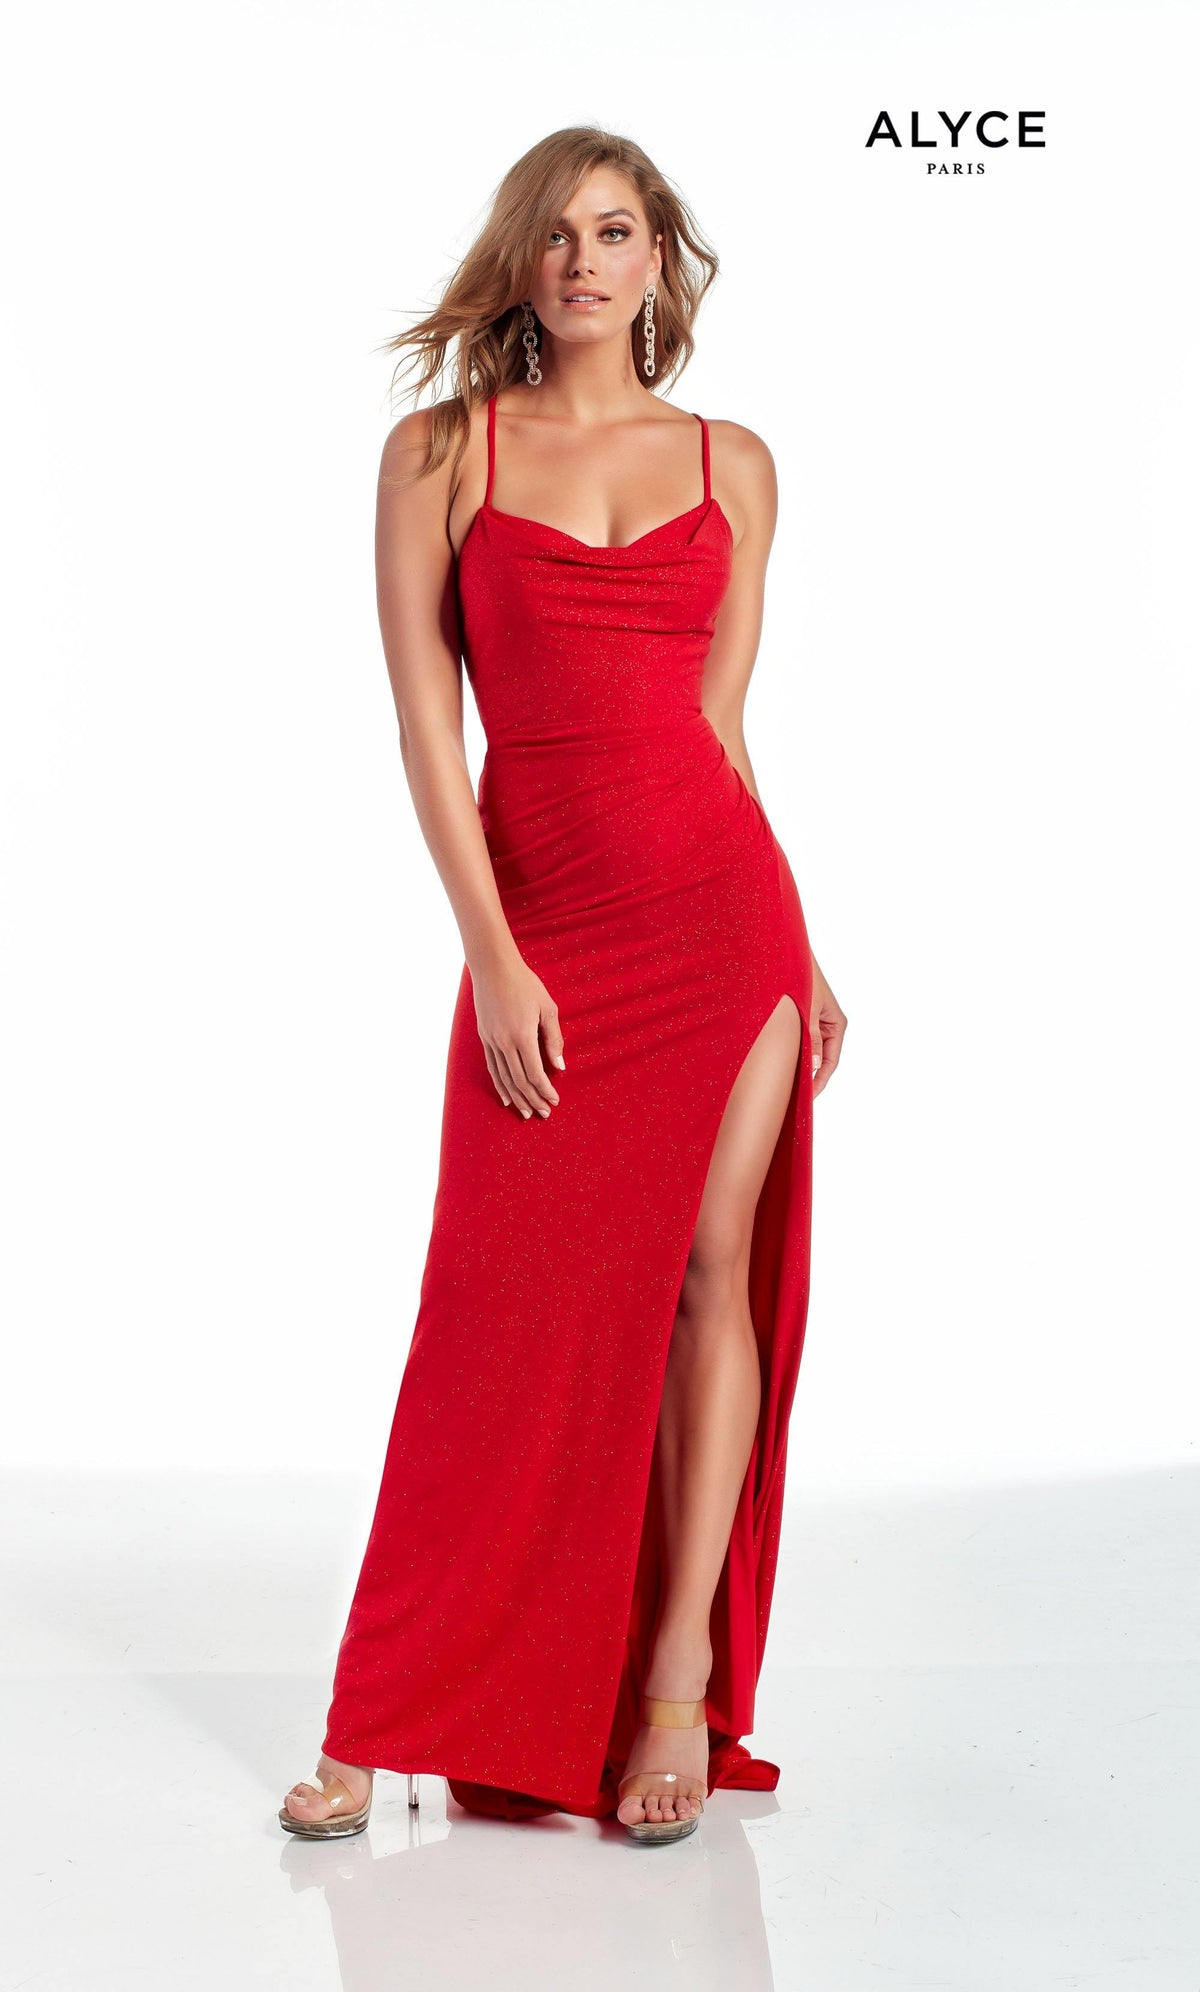 Red sparkle jersey evening dress with a cowl neckline and high slit